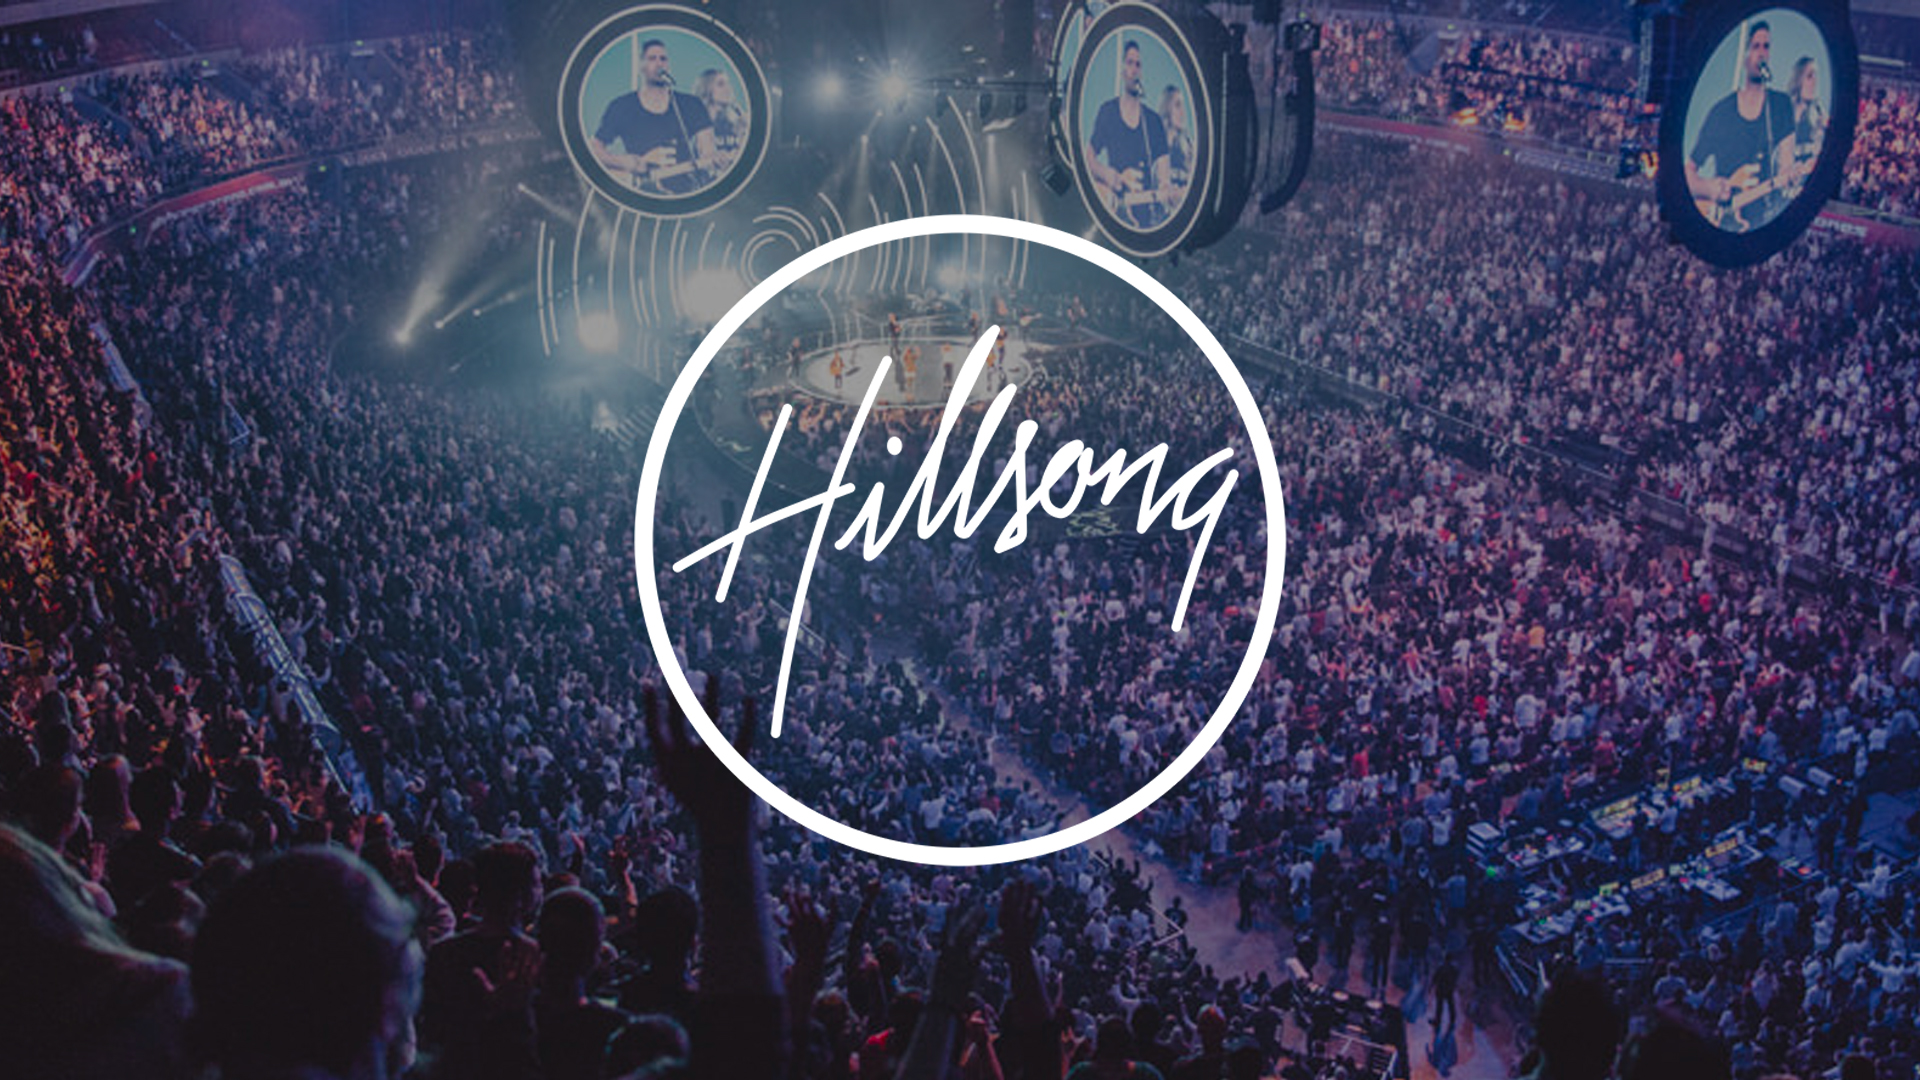 Hillsong Church Denmark